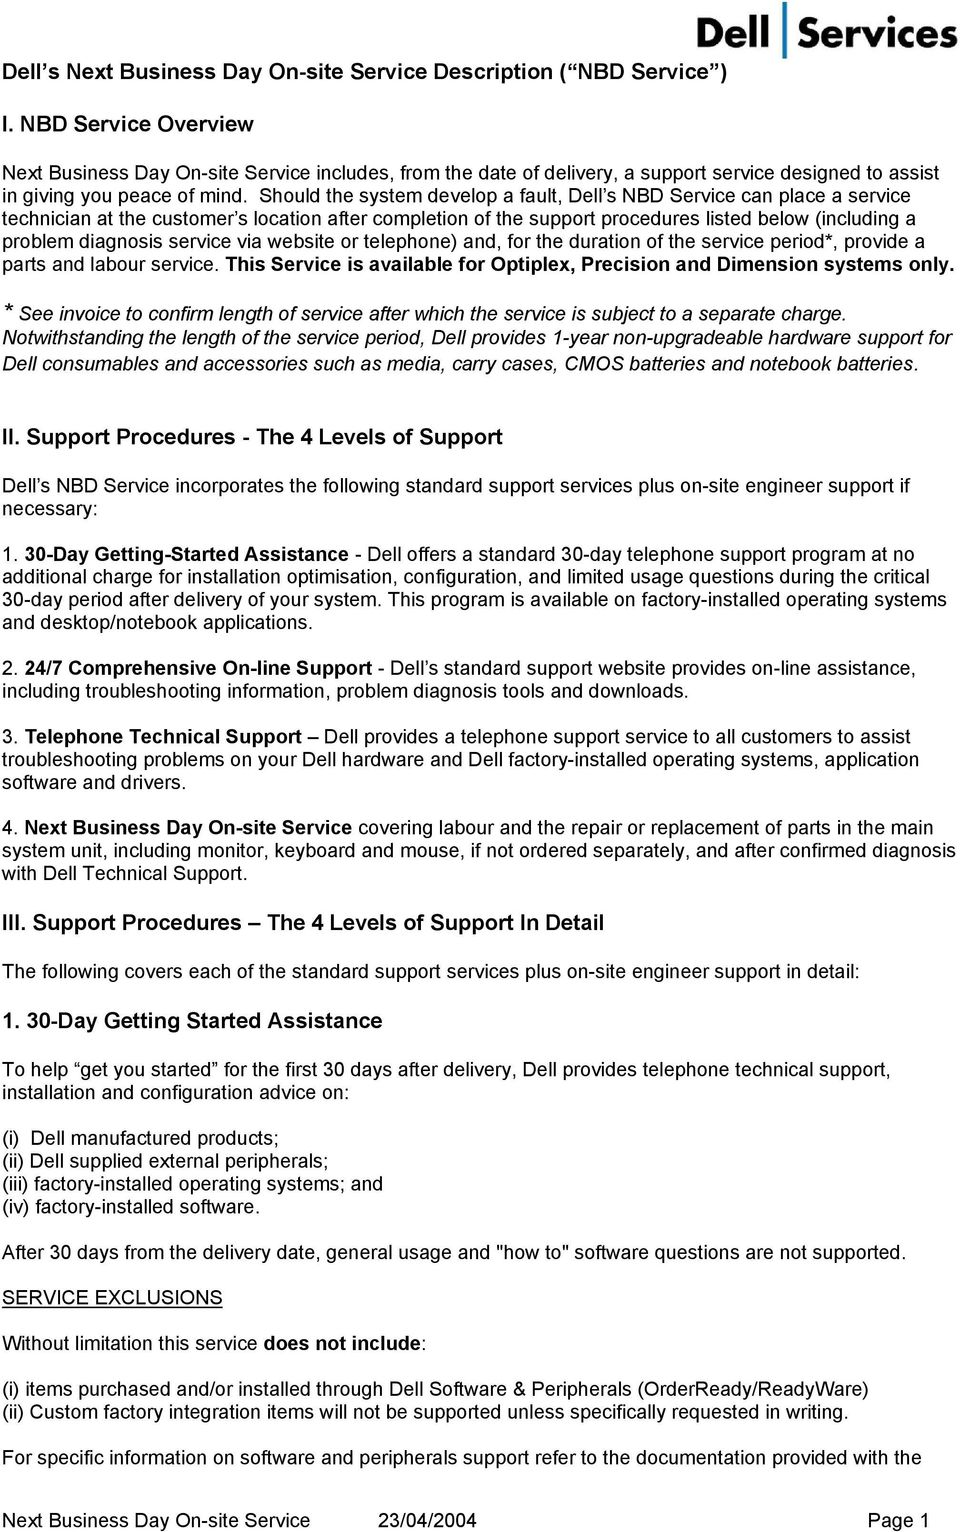 Should the system develop a fault, Dell s NBD Service can place a service technician at the customer s location after completion of the support procedures listed below (including a problem diagnosis